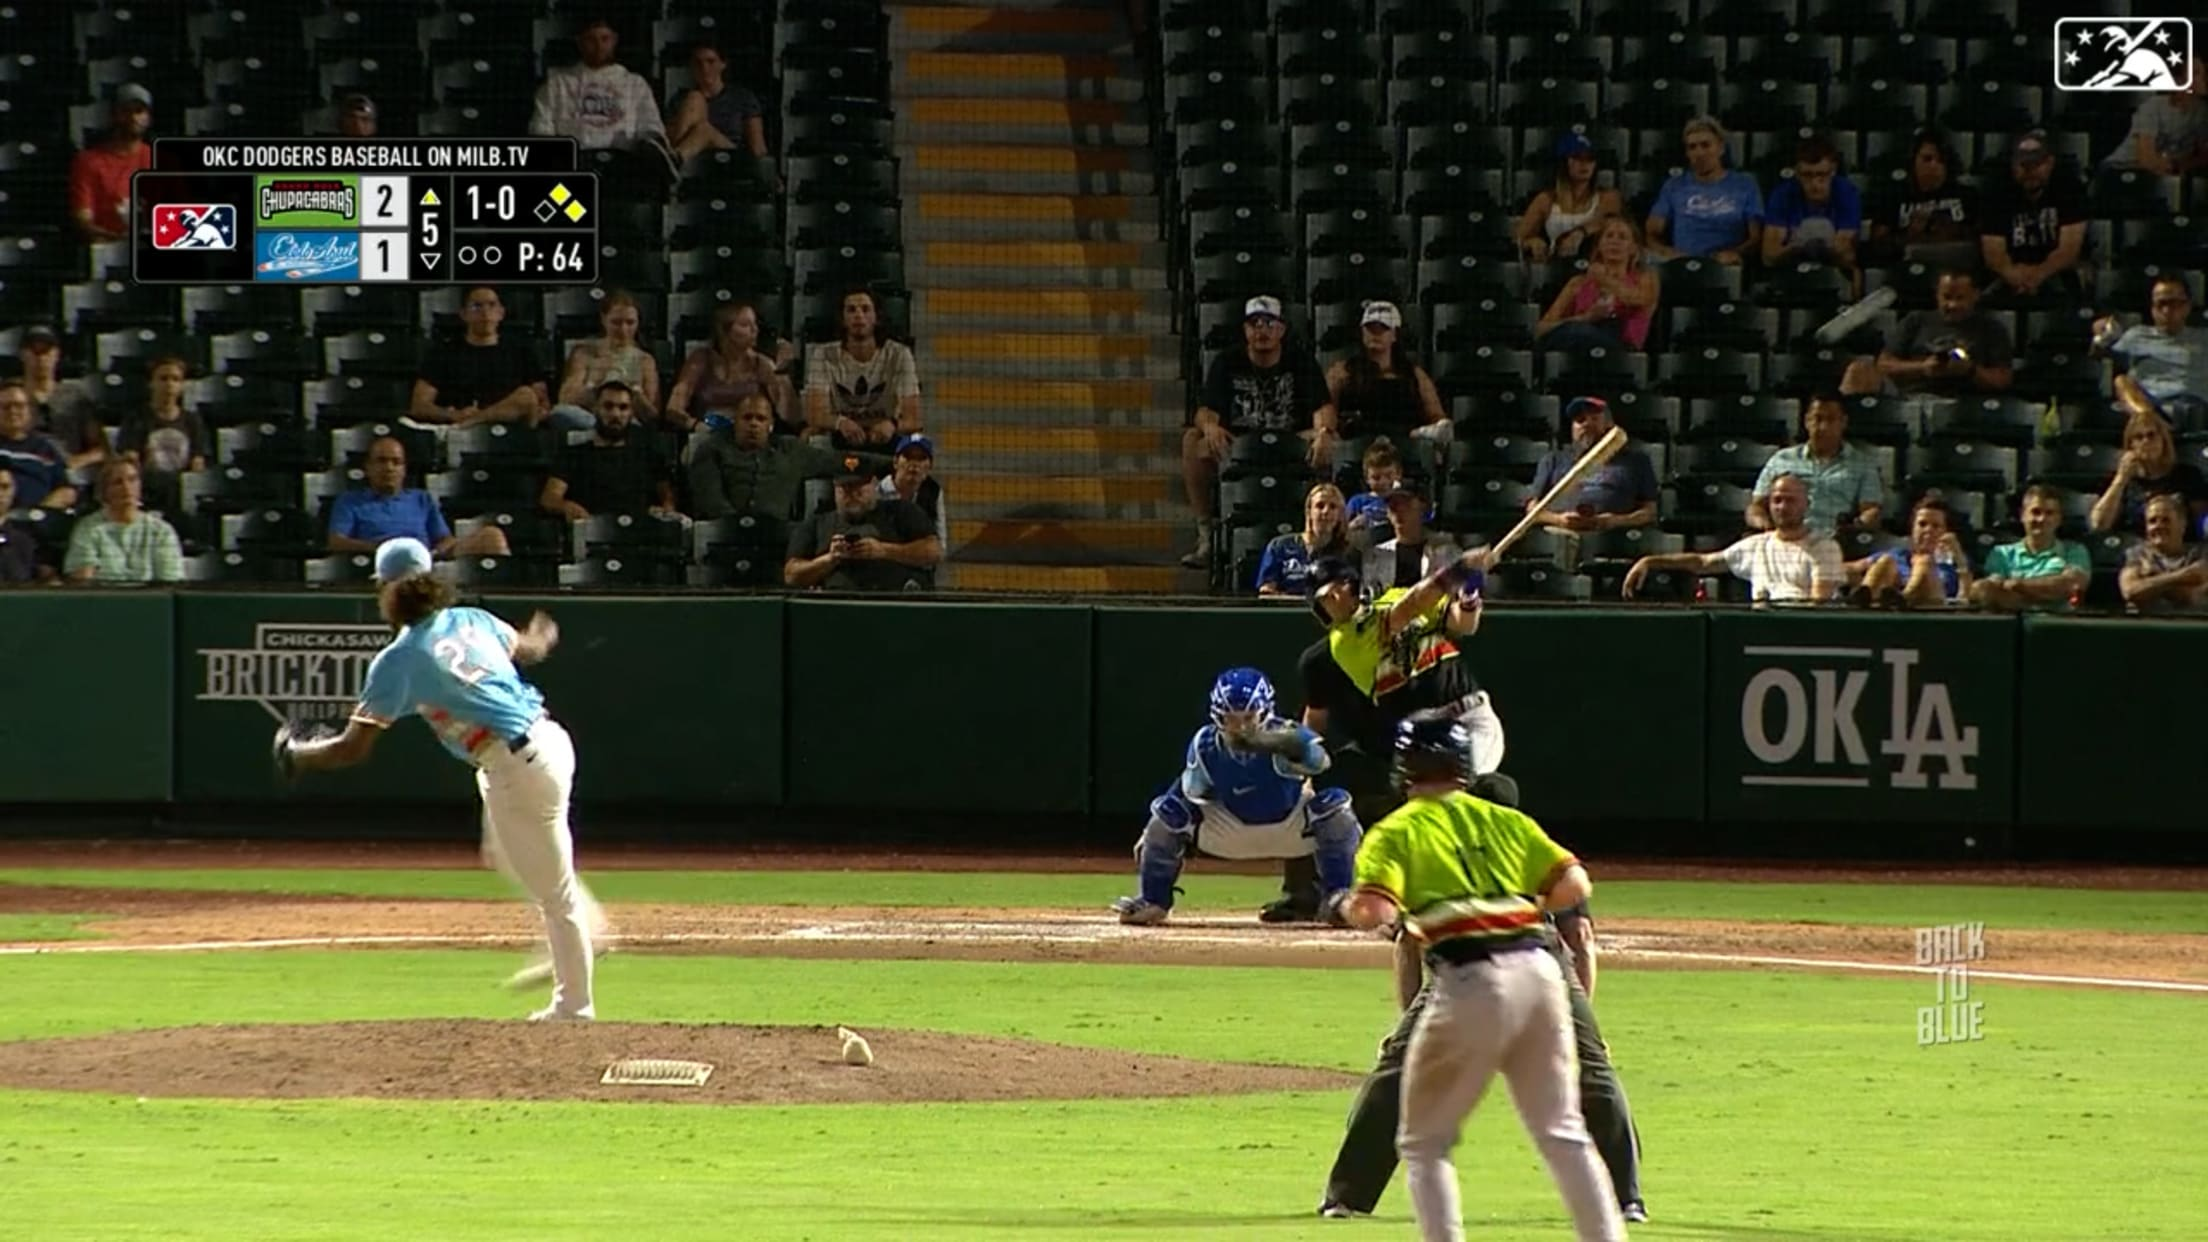 Jung singles for fourth hit